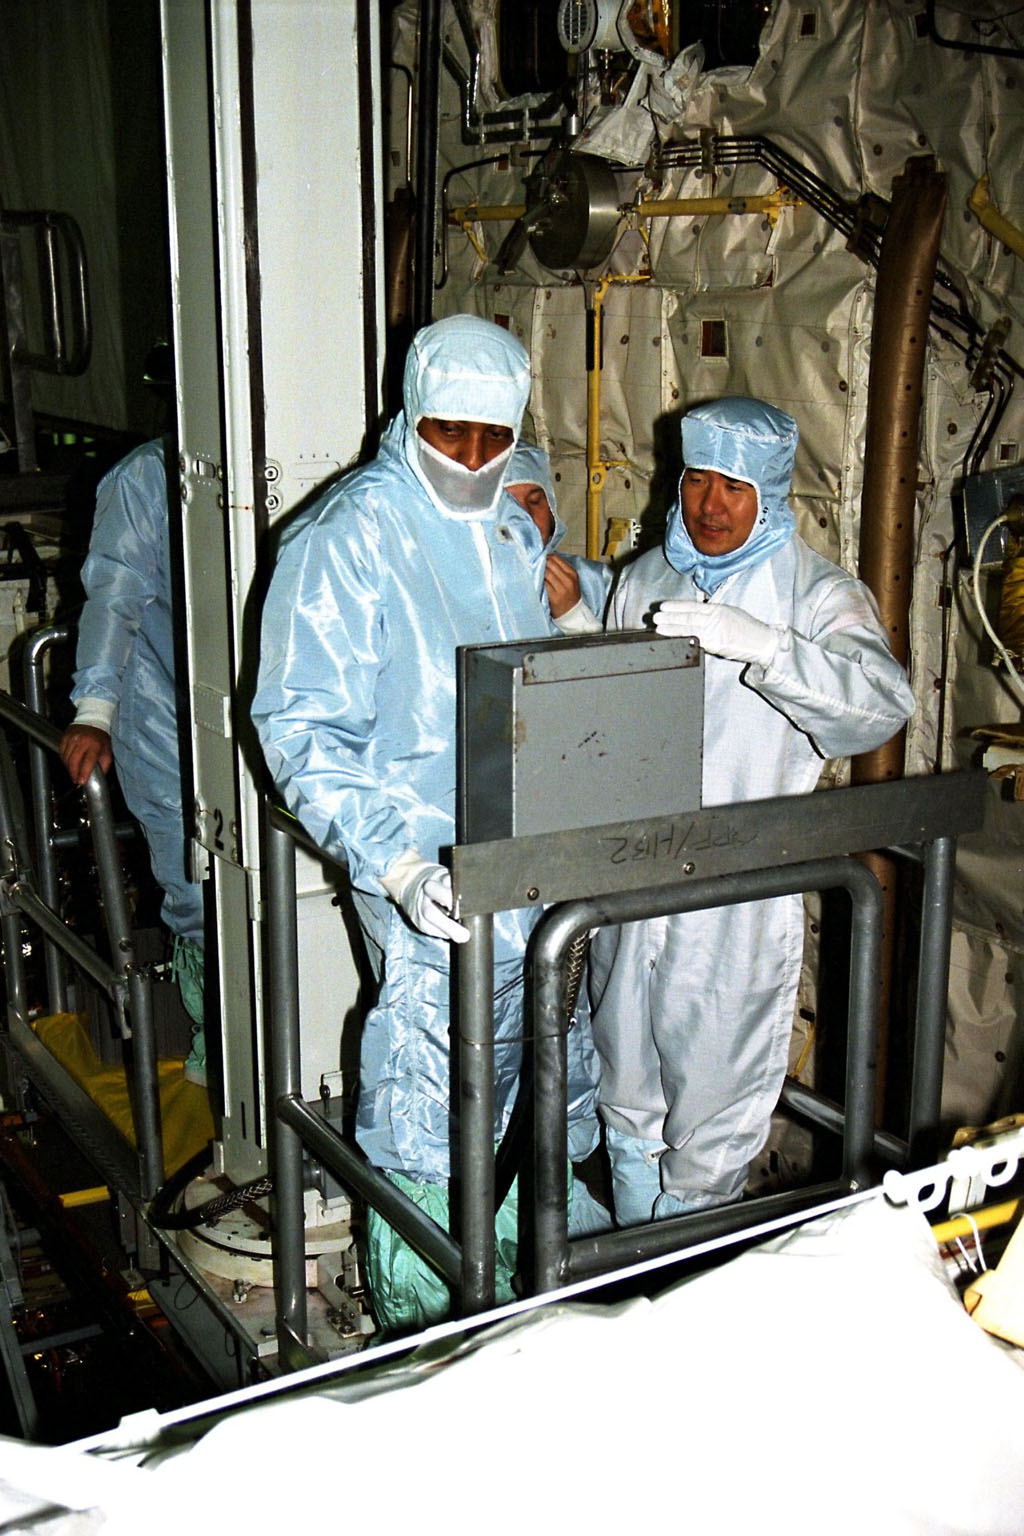 Participating in the Crew Equipment Integration Test (CEIT) at Kennedy Space Center are STS-87 crew members Winston Scott, at left, and Takao Doi, Ph.D., of the National Space Development Agency of Japan, both mission specialists on STS-87. The CEIT gives astronauts an opportunity to get a hands-on look at the payloads with which they will be working on-orbit. STS-87 will be the fourth United States Microgravity Payload and flight of the Spartan-201 deployable satellite. During the STS-87 mission, scheduled for a Nov. 19 liftoff from KSC, Dr. Doi and Scott will both perform spacewalks. STS-87 is scheduled for a Nov. 19 liftoff from KSC